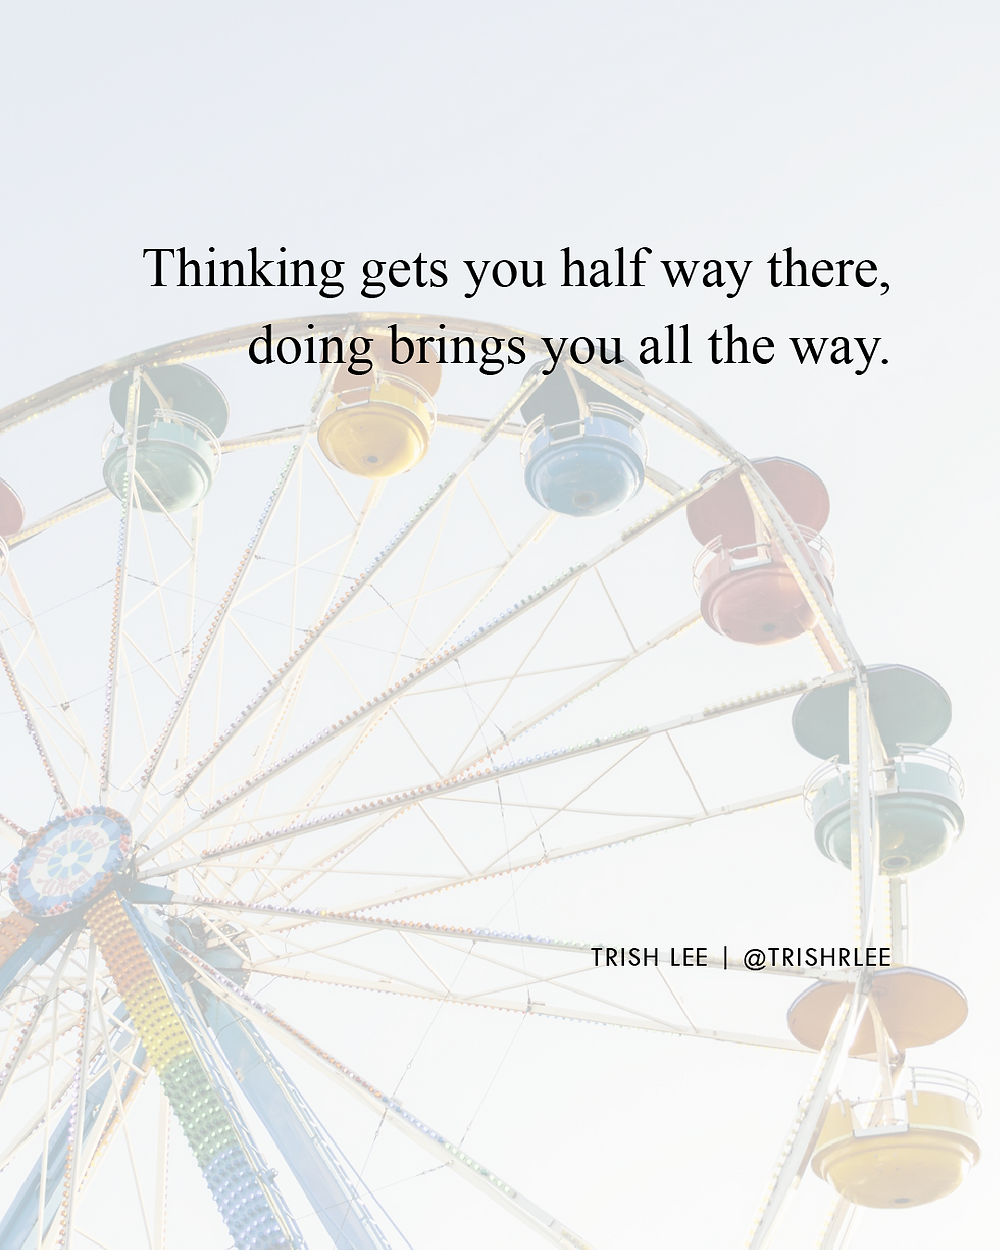 thinking-gets-you-half-way-there-doing-brings-you-all-the-way-quote-by-trish-lee